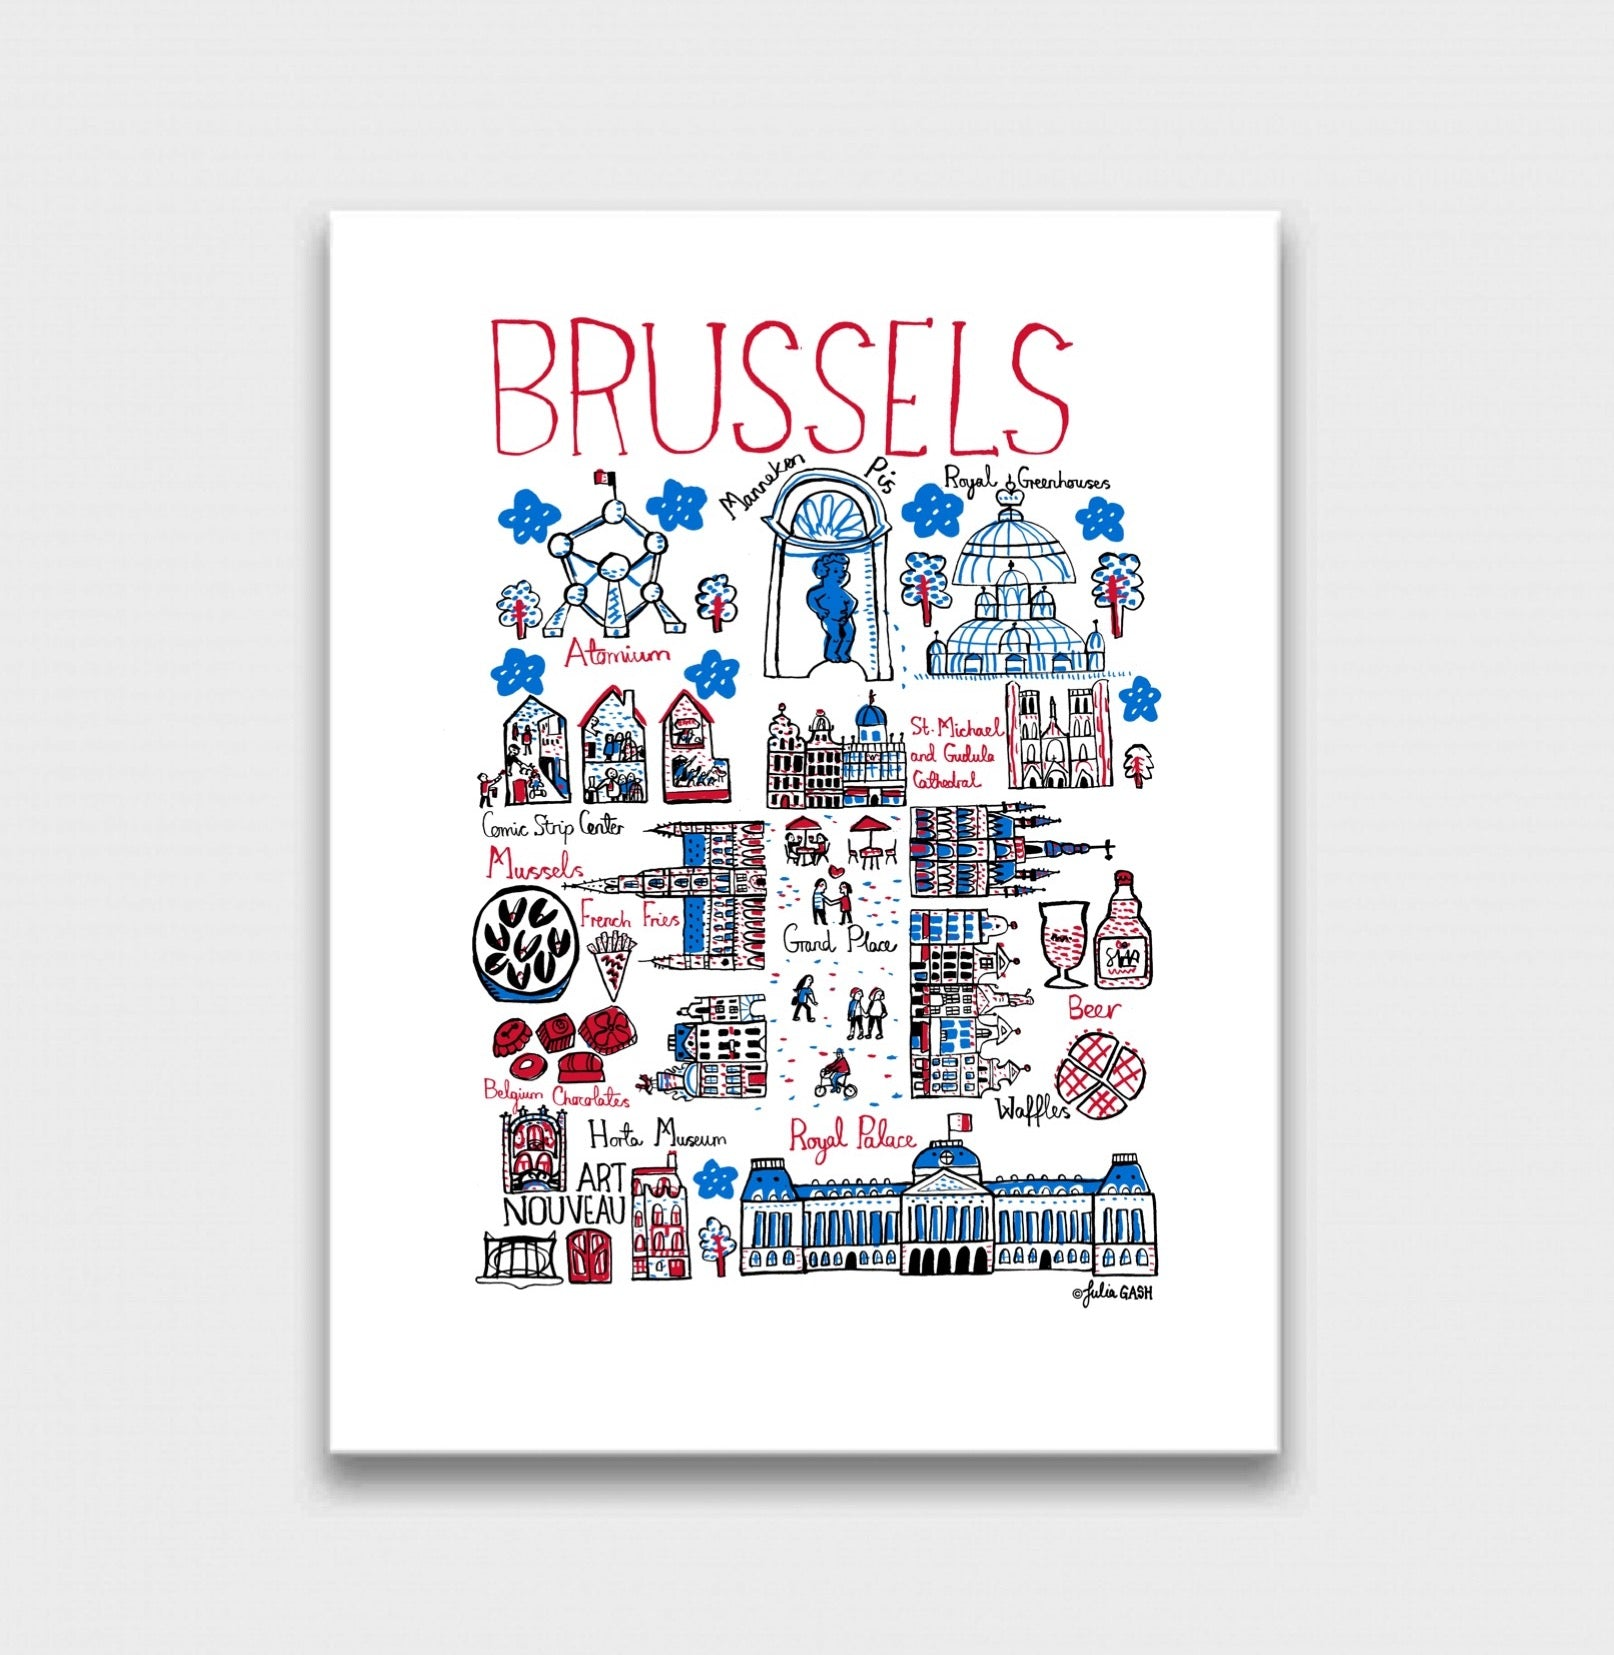 Brussels Art Print - Julia Gash